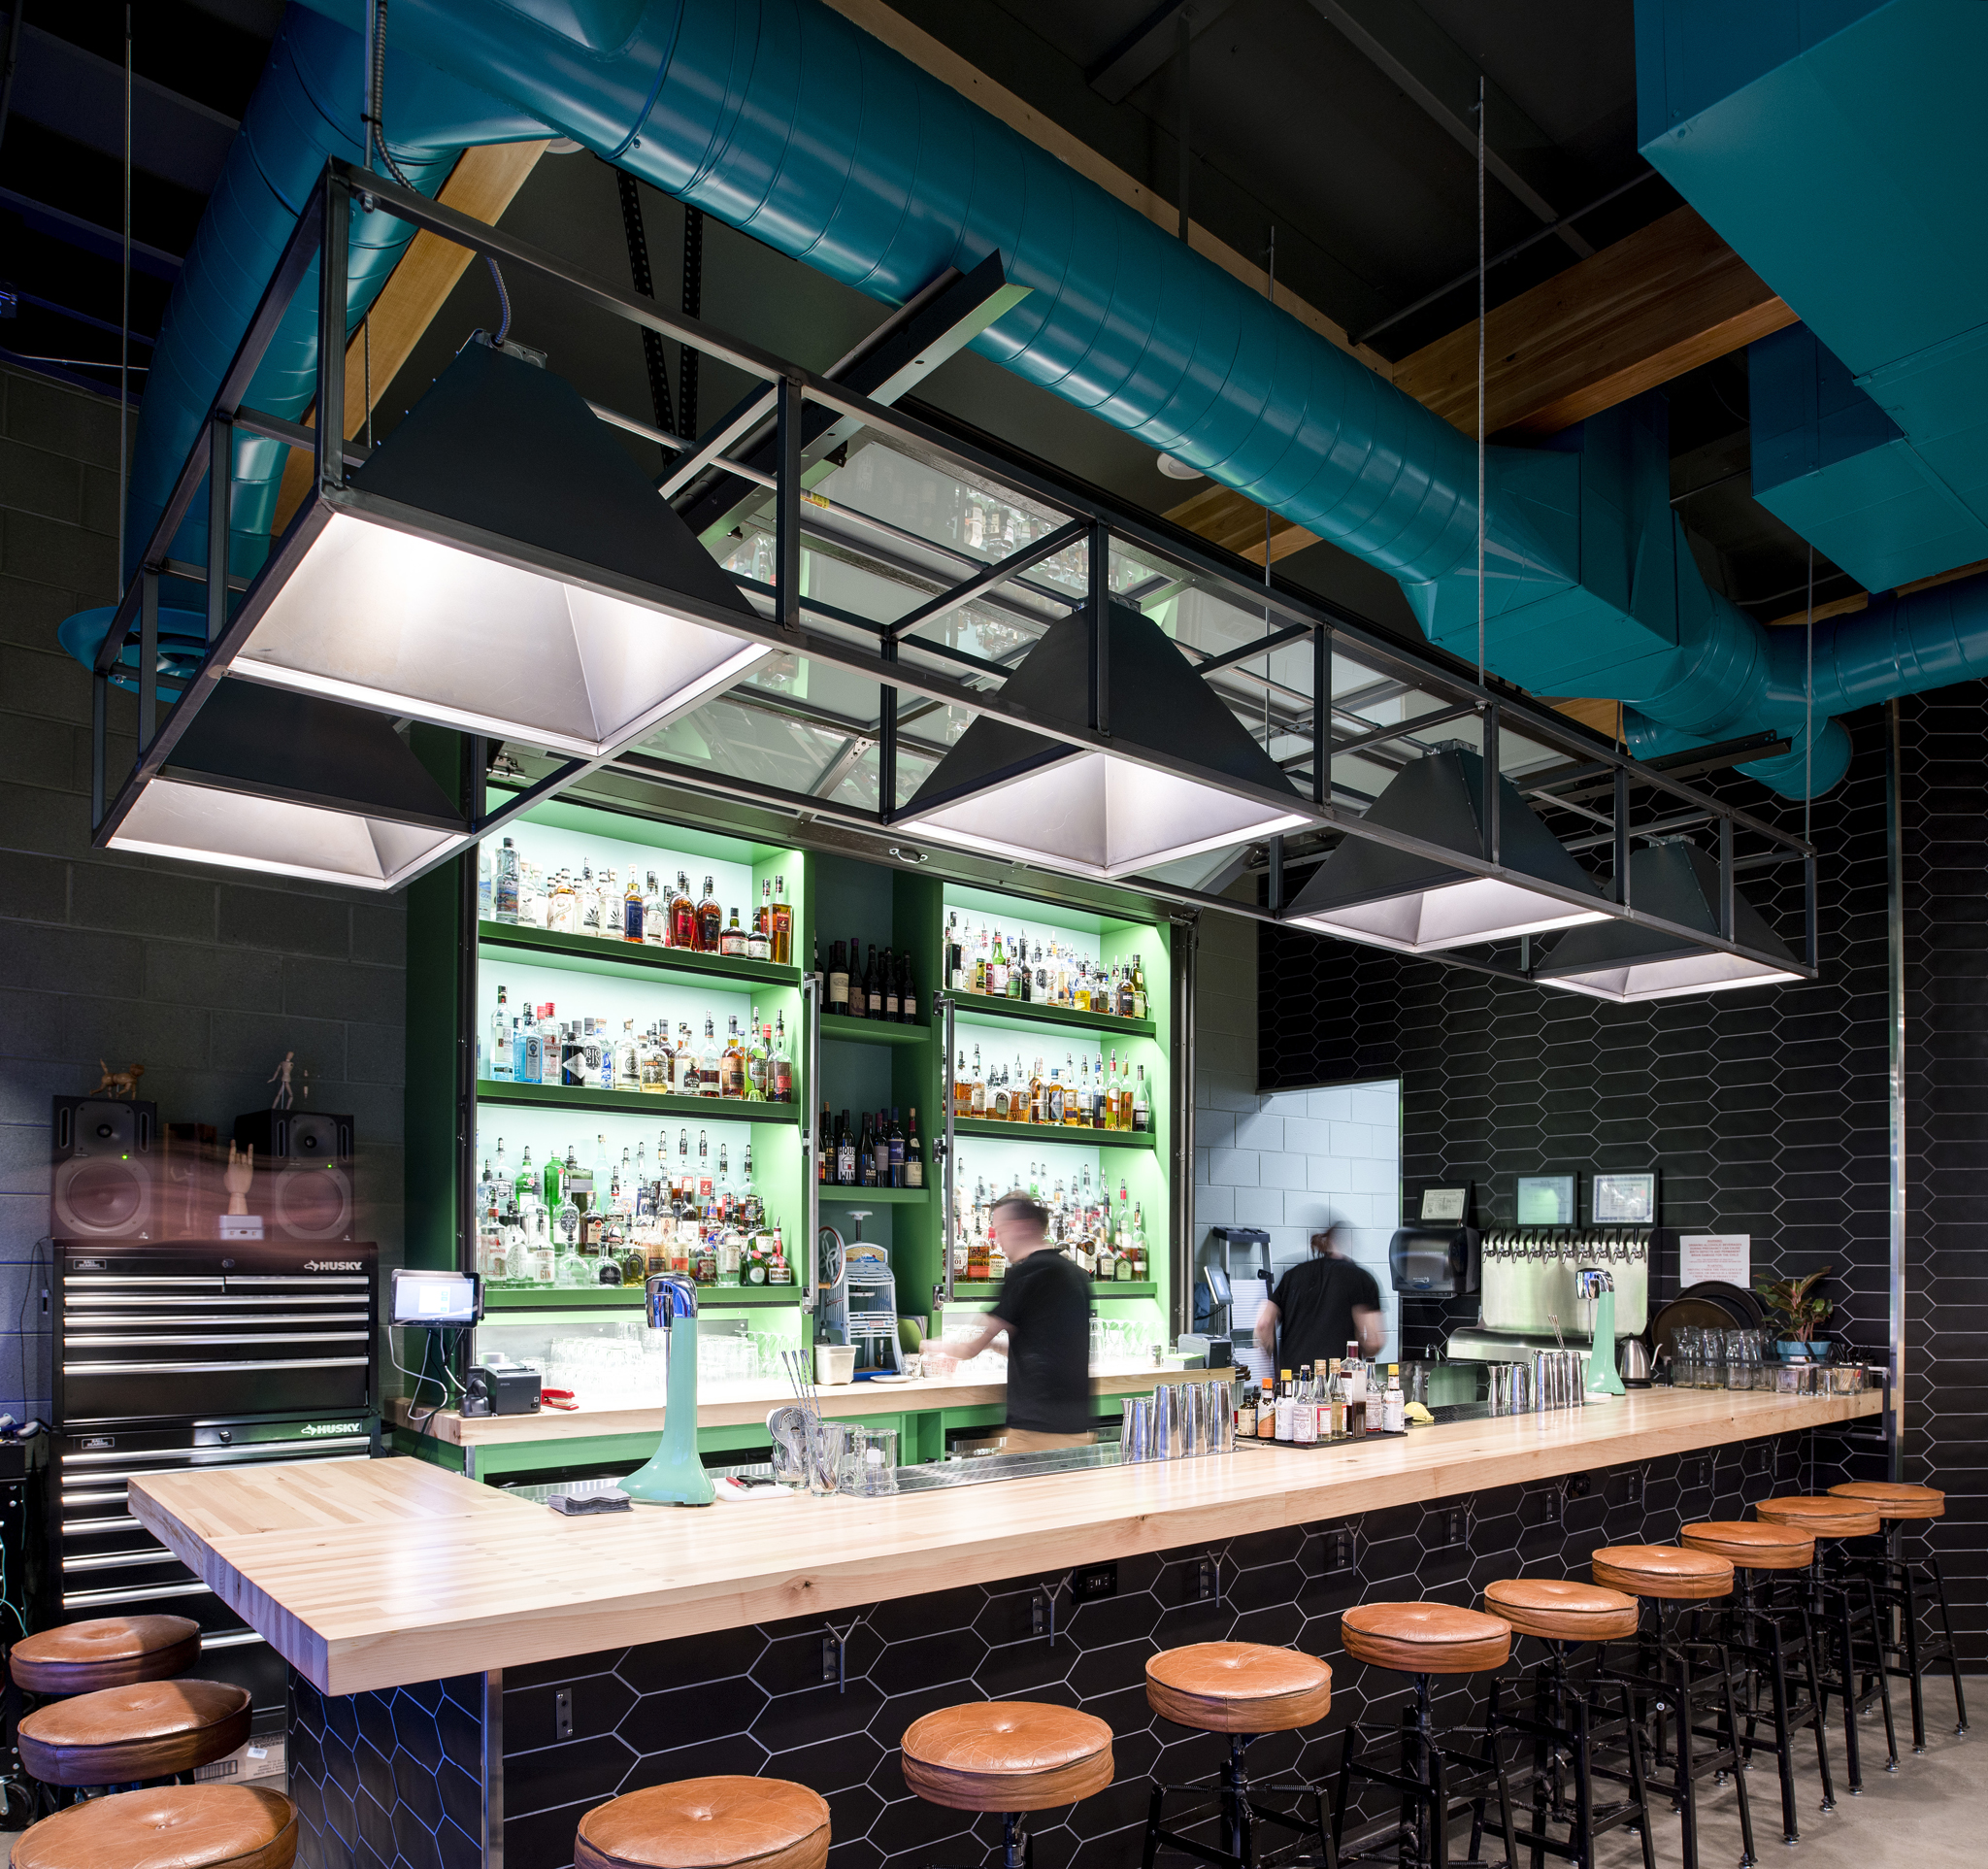 Water Witch is the vision of three giants of the Salt Lake City bar and culture scene - Sean Neves, Scott Gardener and Matt Pfohl. I was lucky enough to be asked to design their 800 sq foot bar, Water Witch in the up-and-coming Central 9th neighborhood.